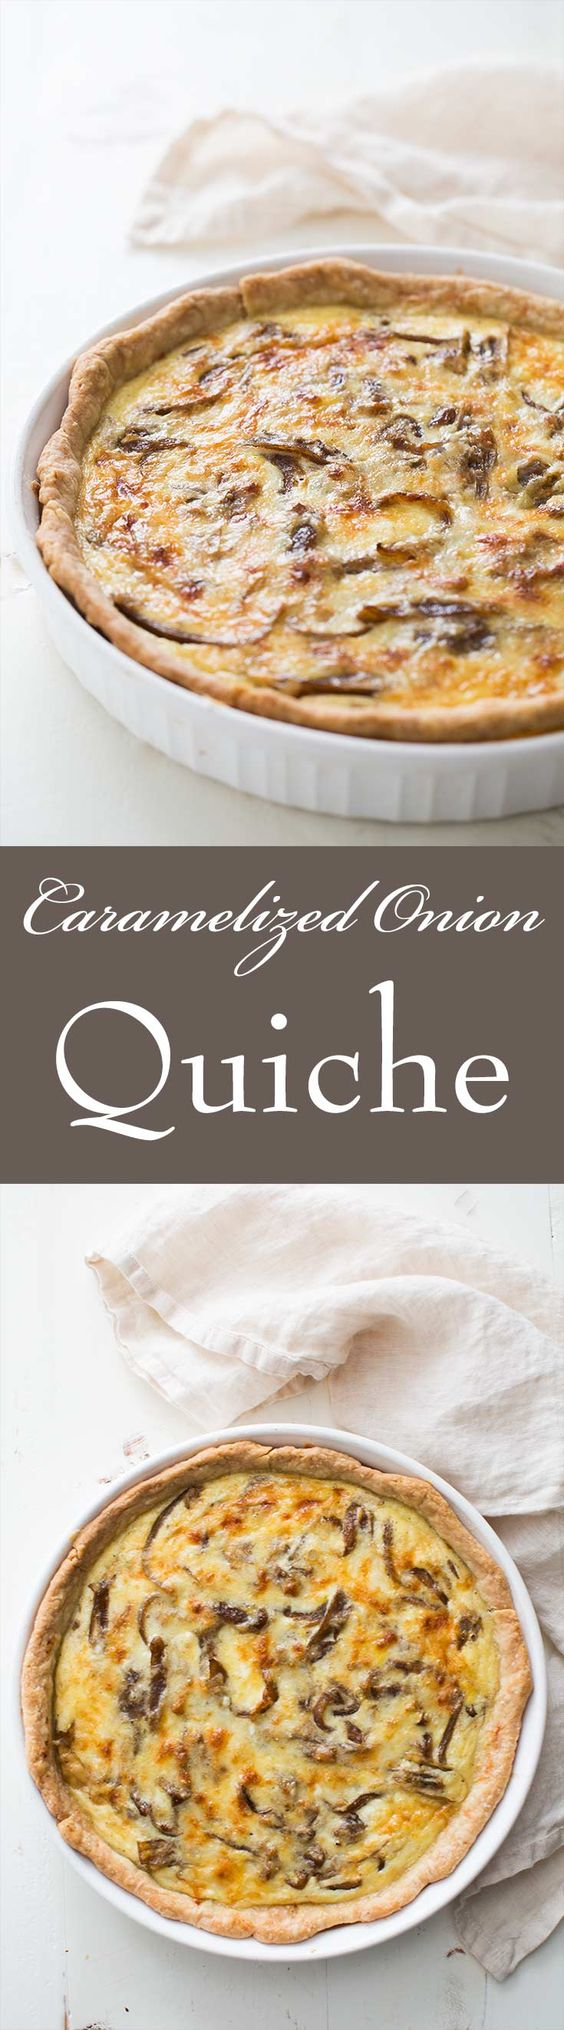 ... creamy quiche with caramelized onions and Gruyere cheese